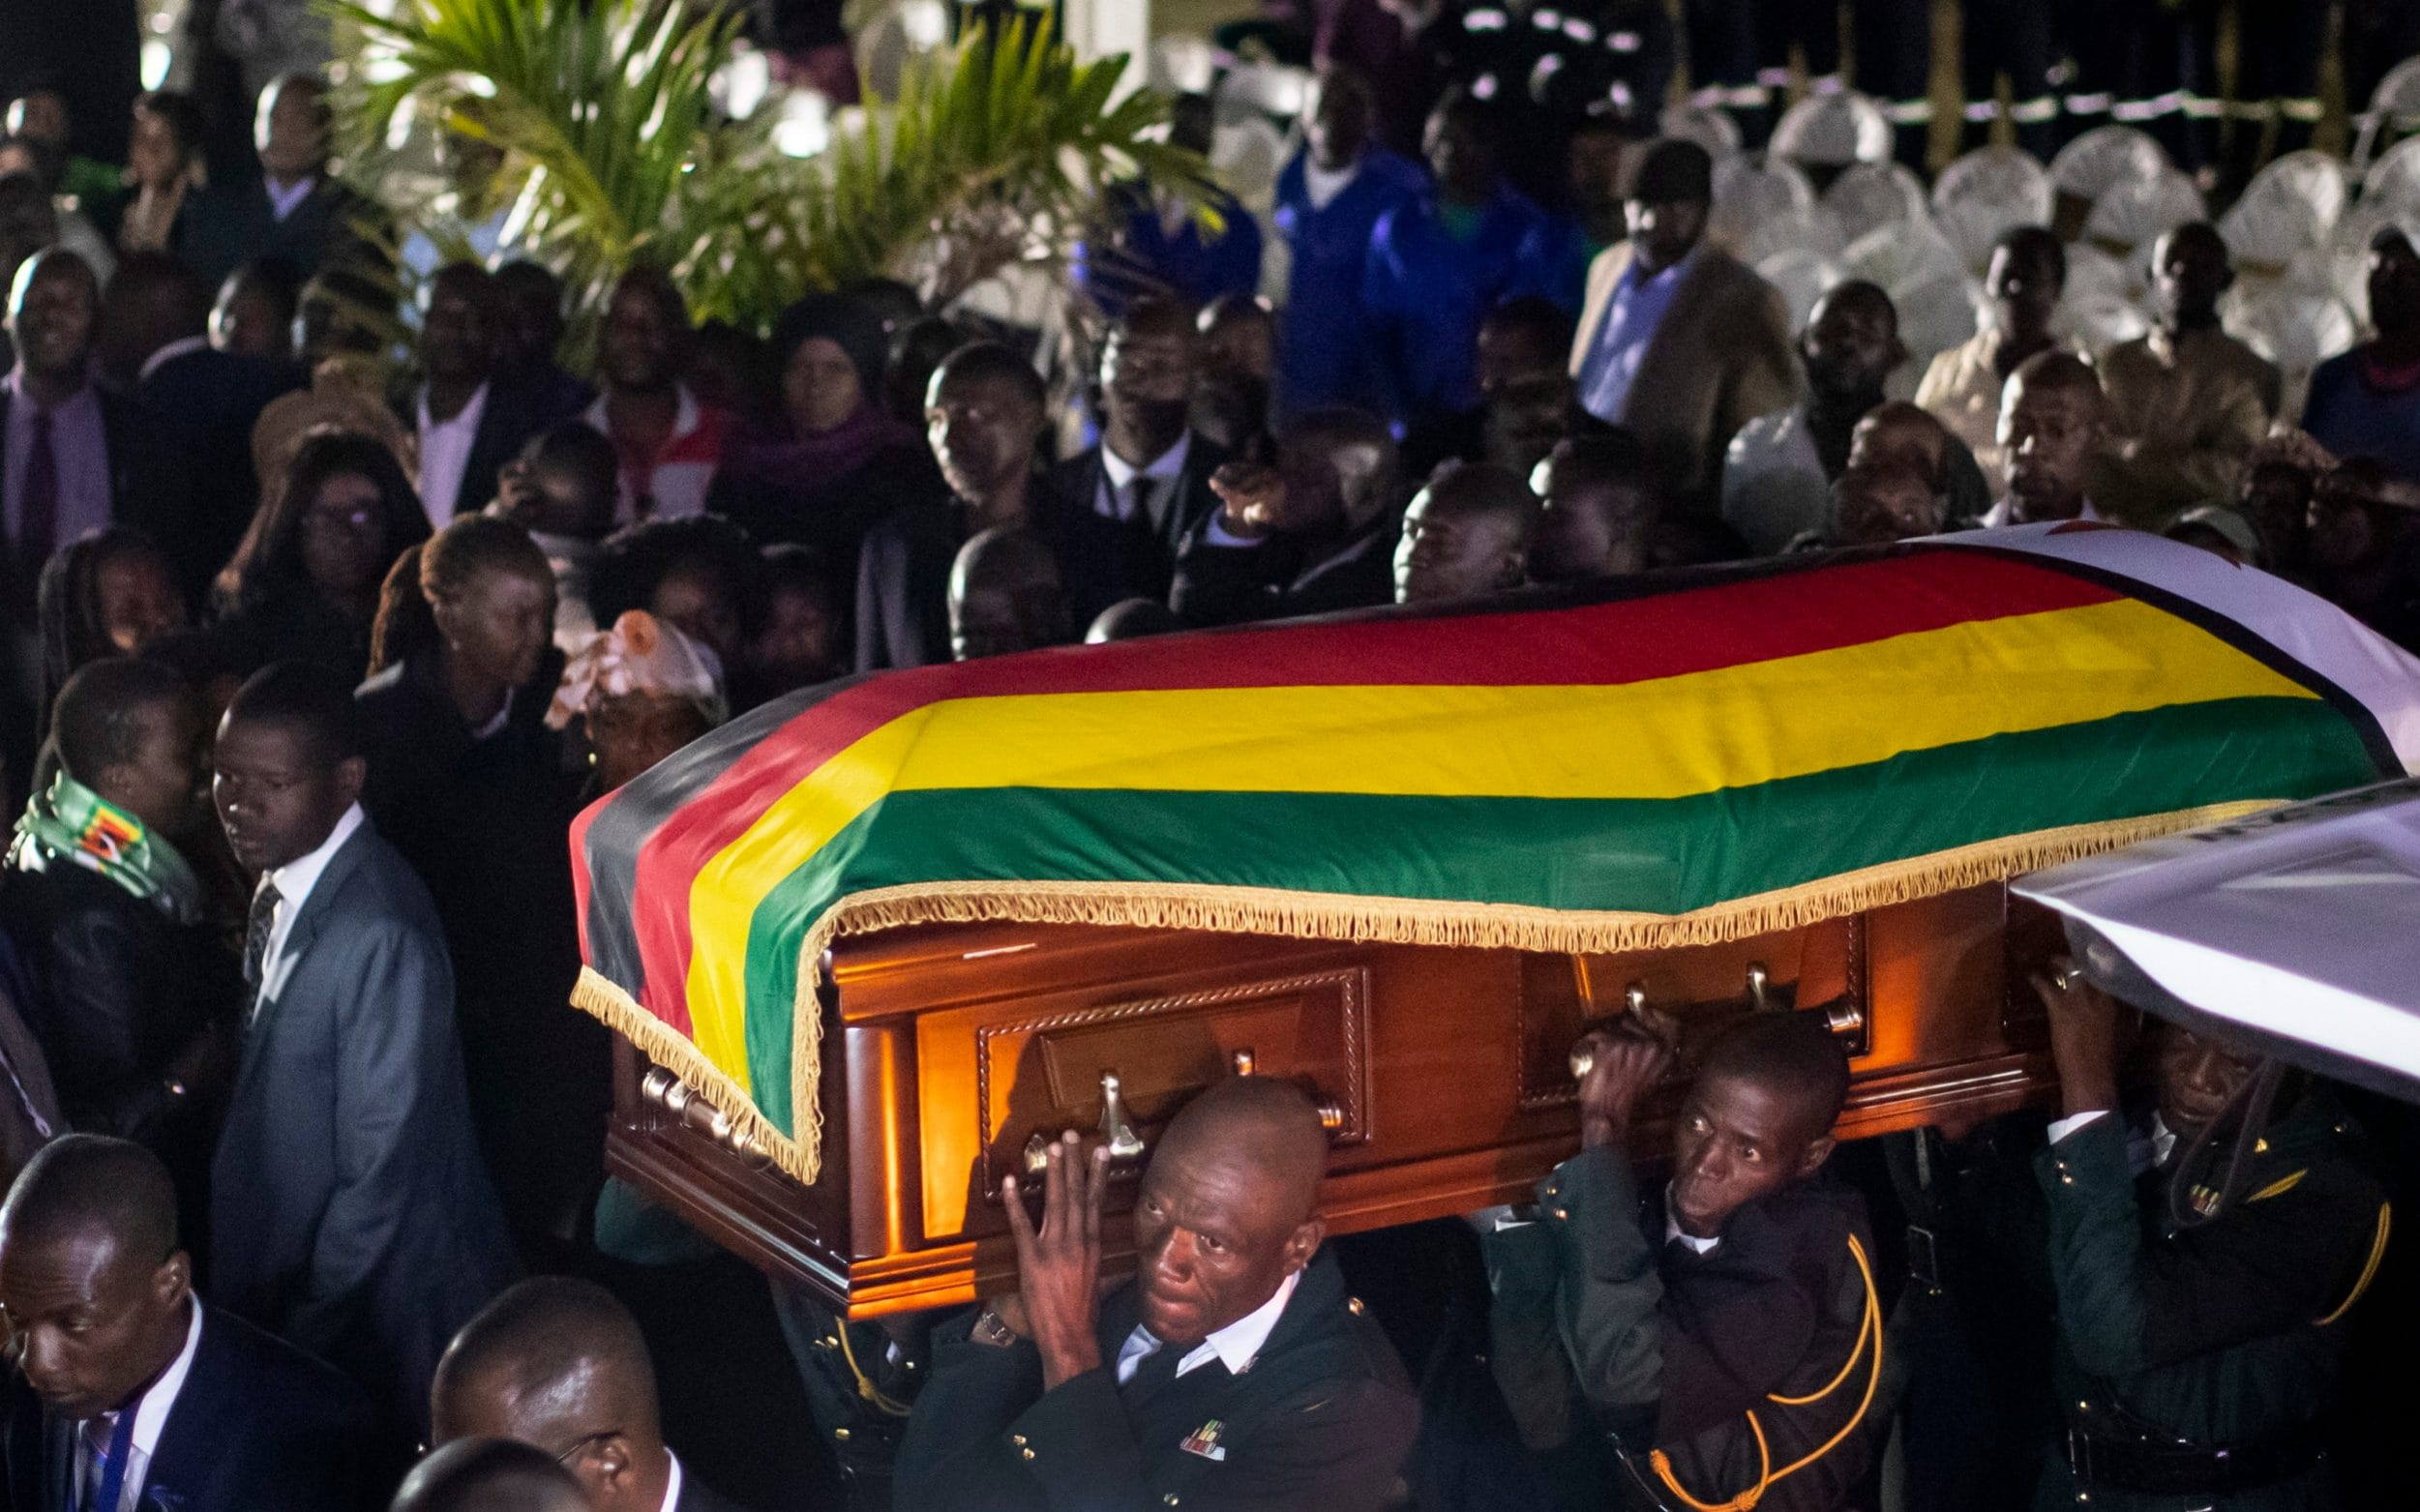 Robert Mugabe to be buried in home village as Zimbabwe government abandons mausoleum plans